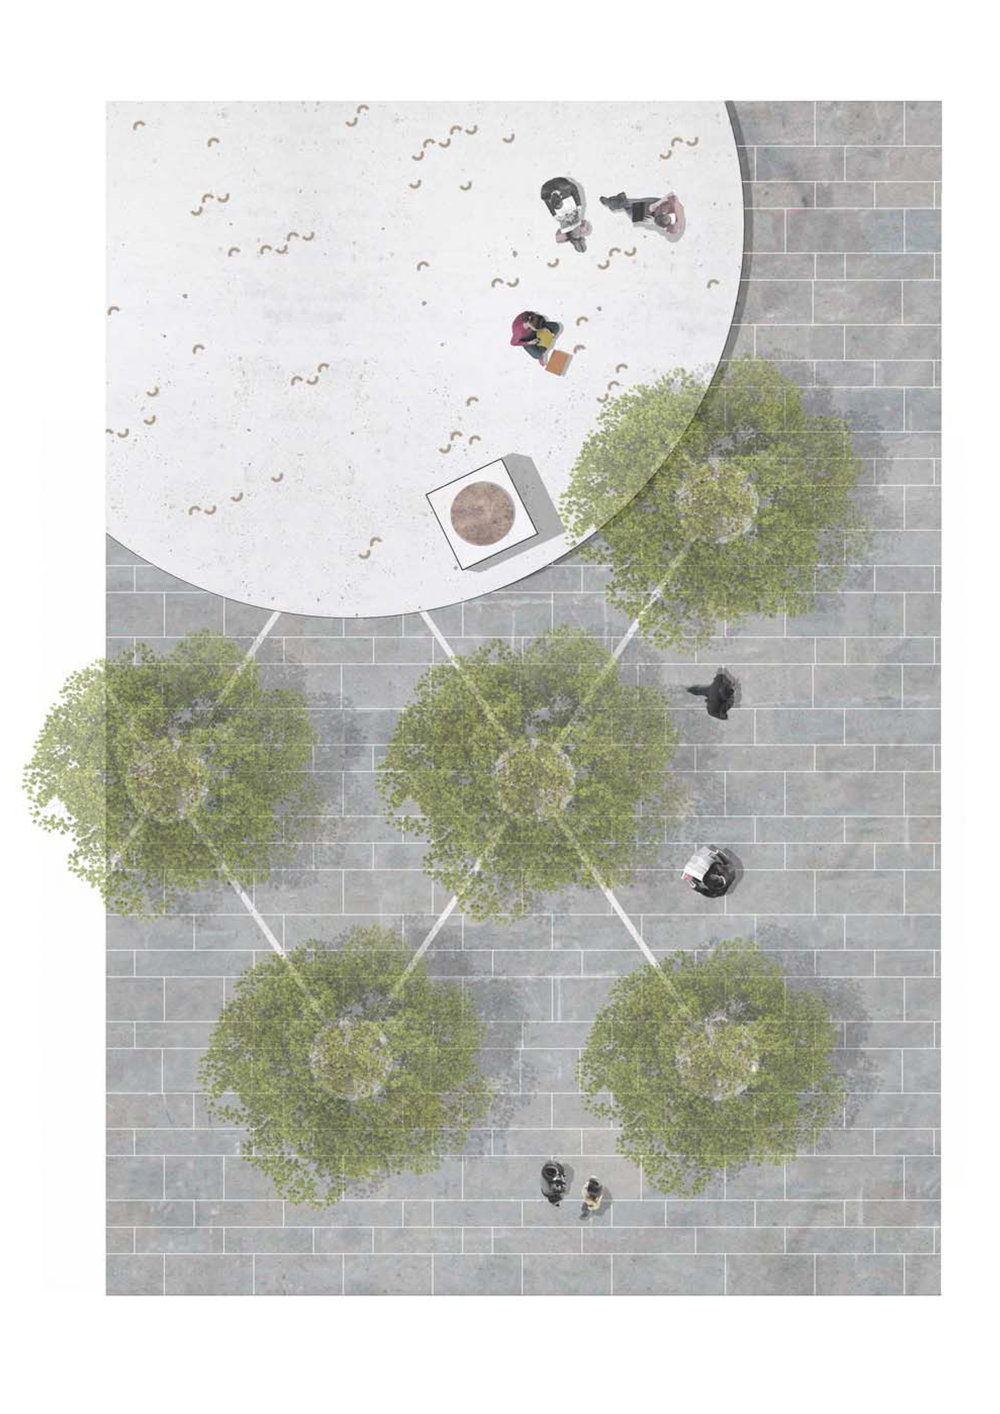 Architecture_Kombinat-Tina Rugelj_part of the plan_2.jpg